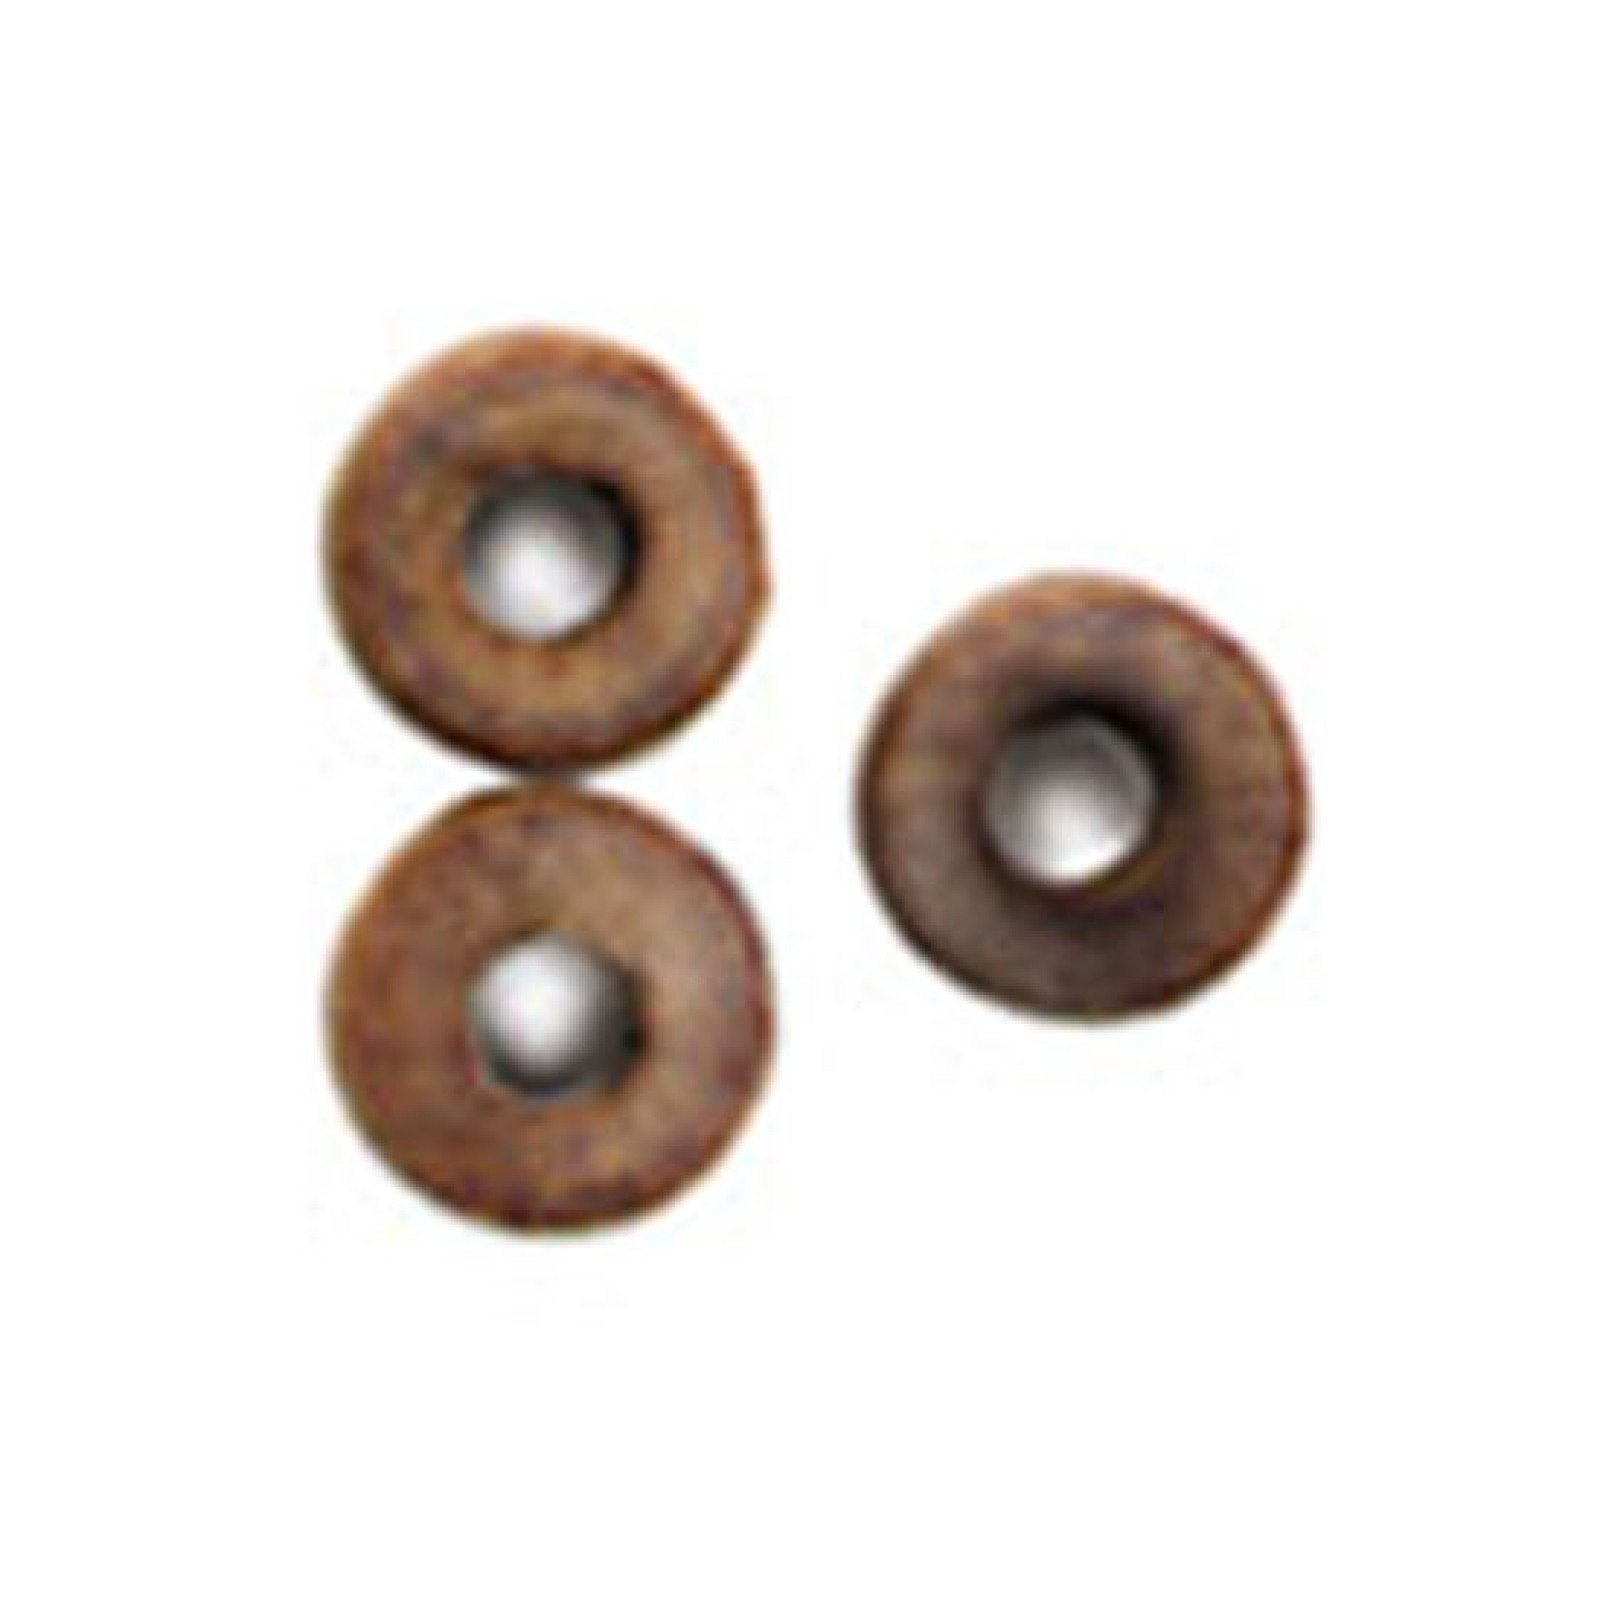 TRUCKS, WOOD CANNON WHEELS    12 PK      6MM